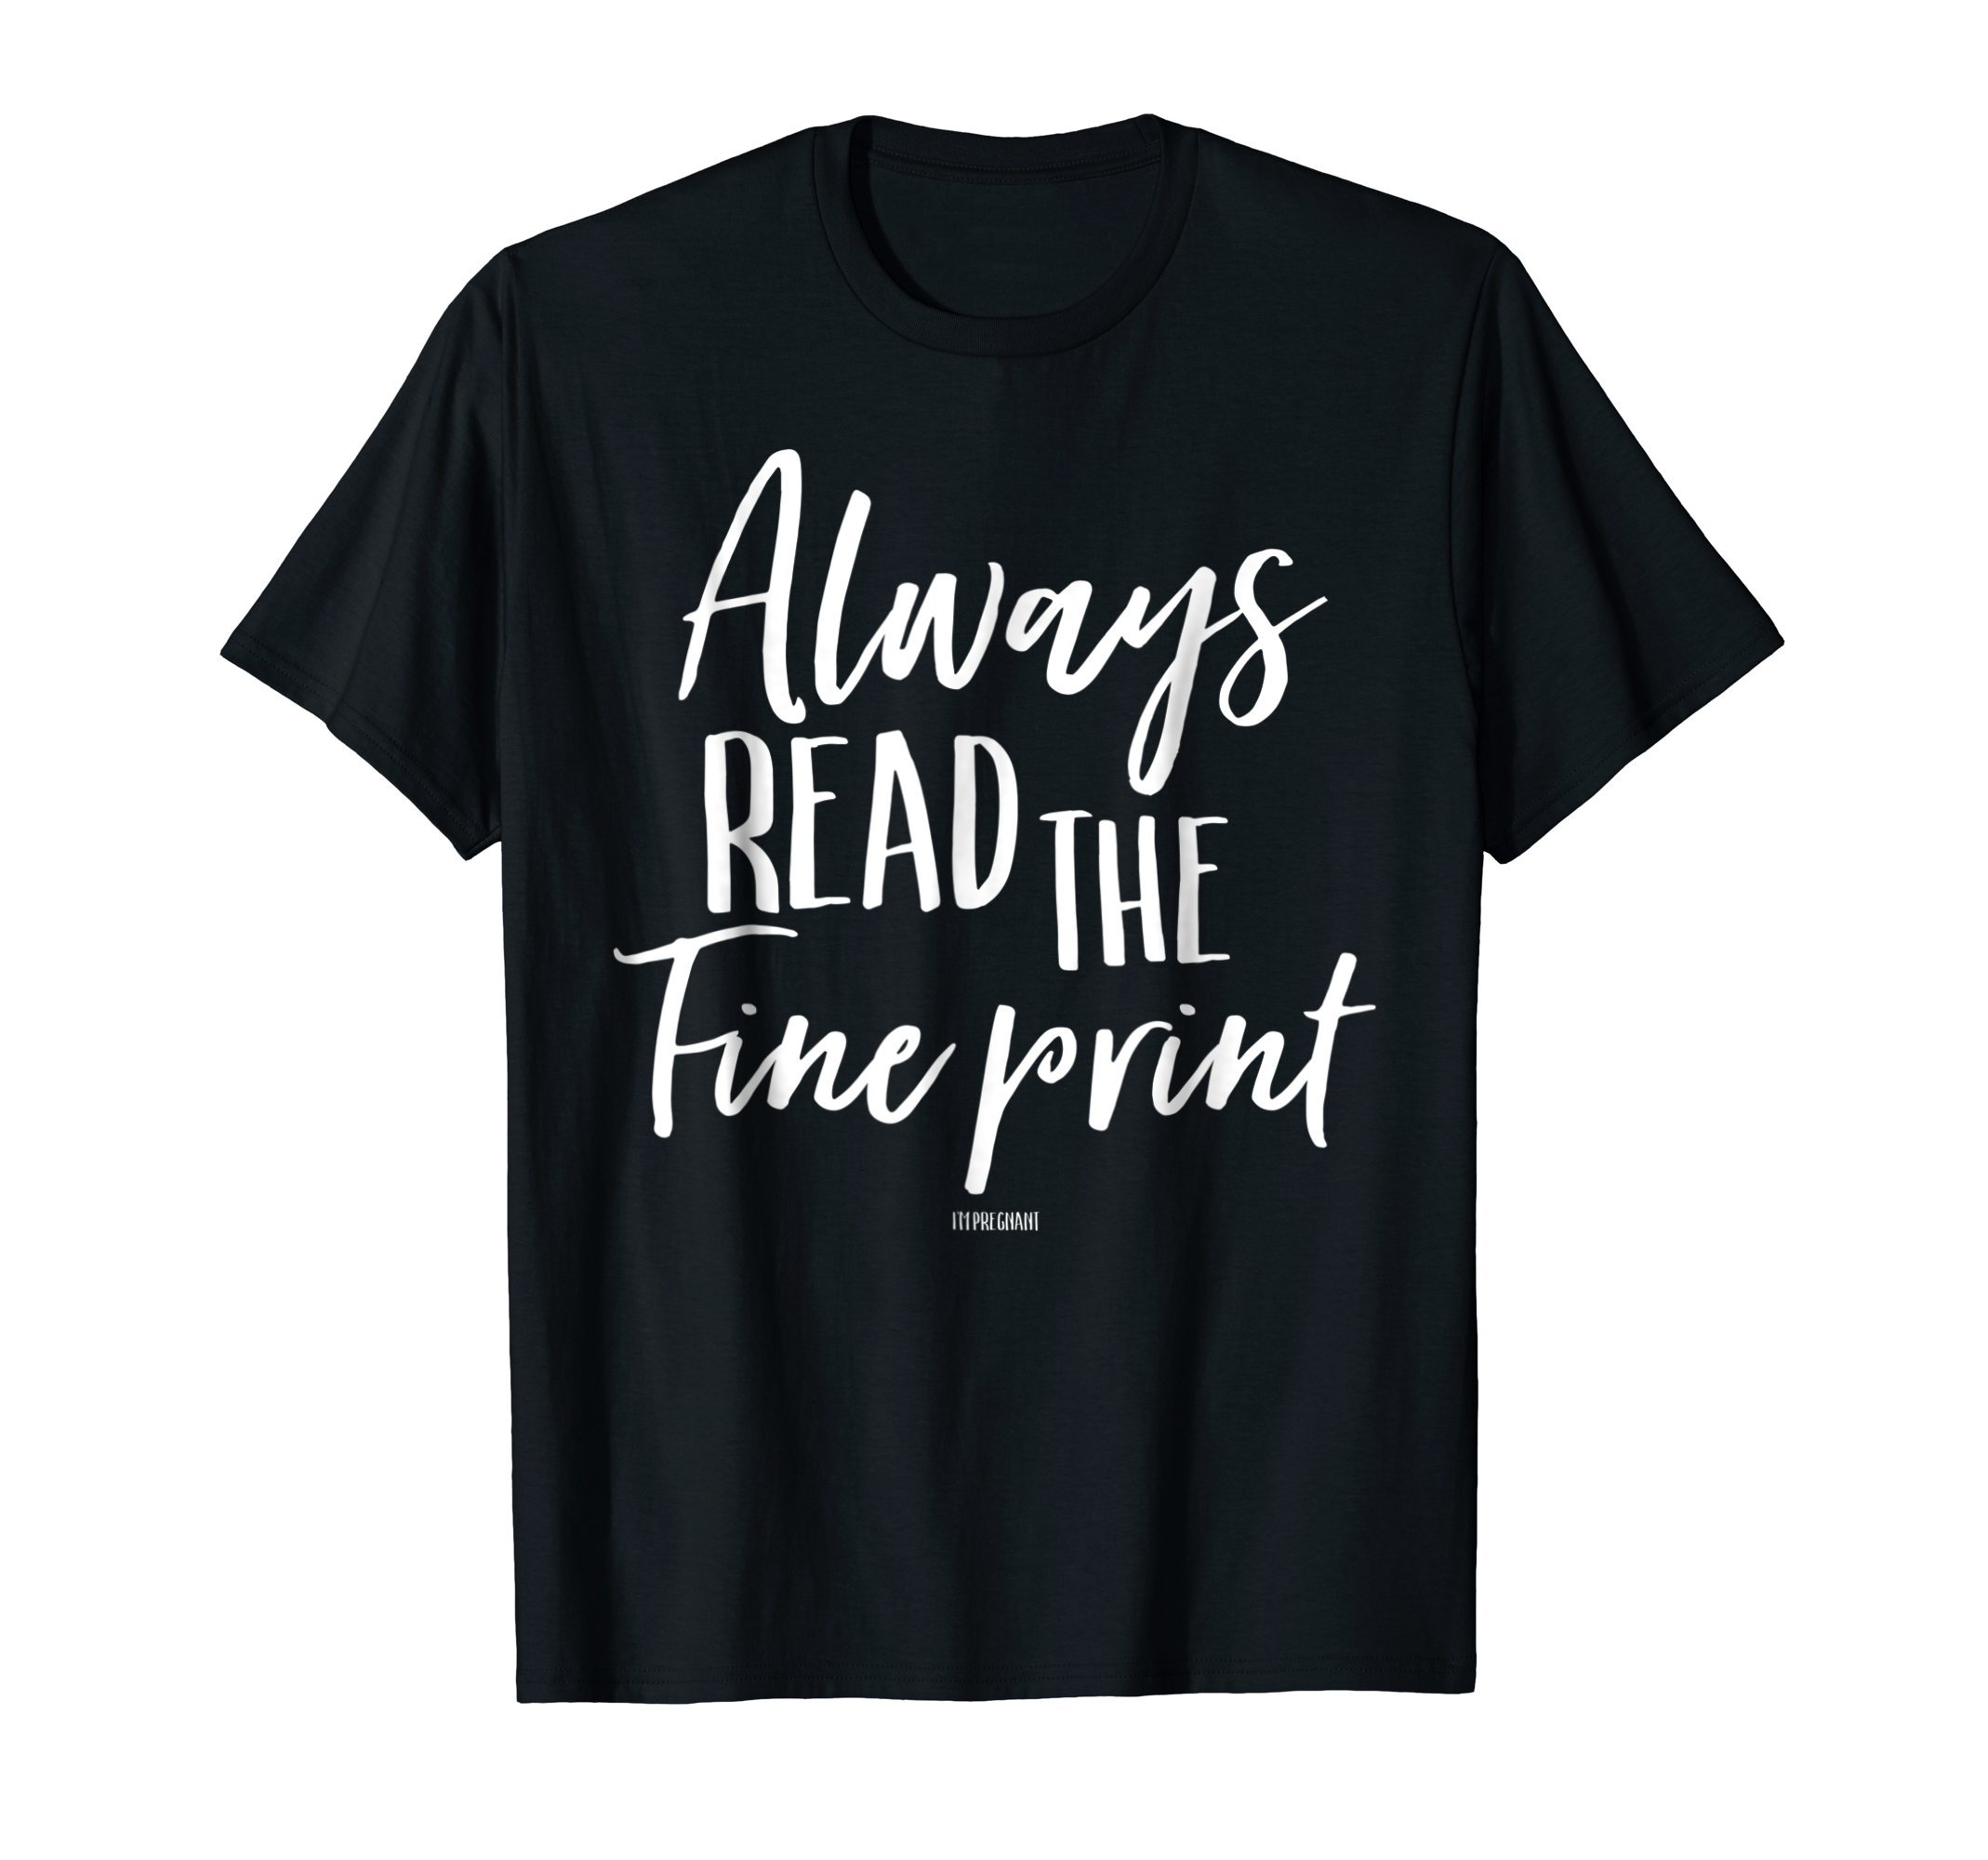 Always Read The Fine Print I'm Pregnant Shirt Announcement by Big News Pregnancy Announcement Threads (Image #1)